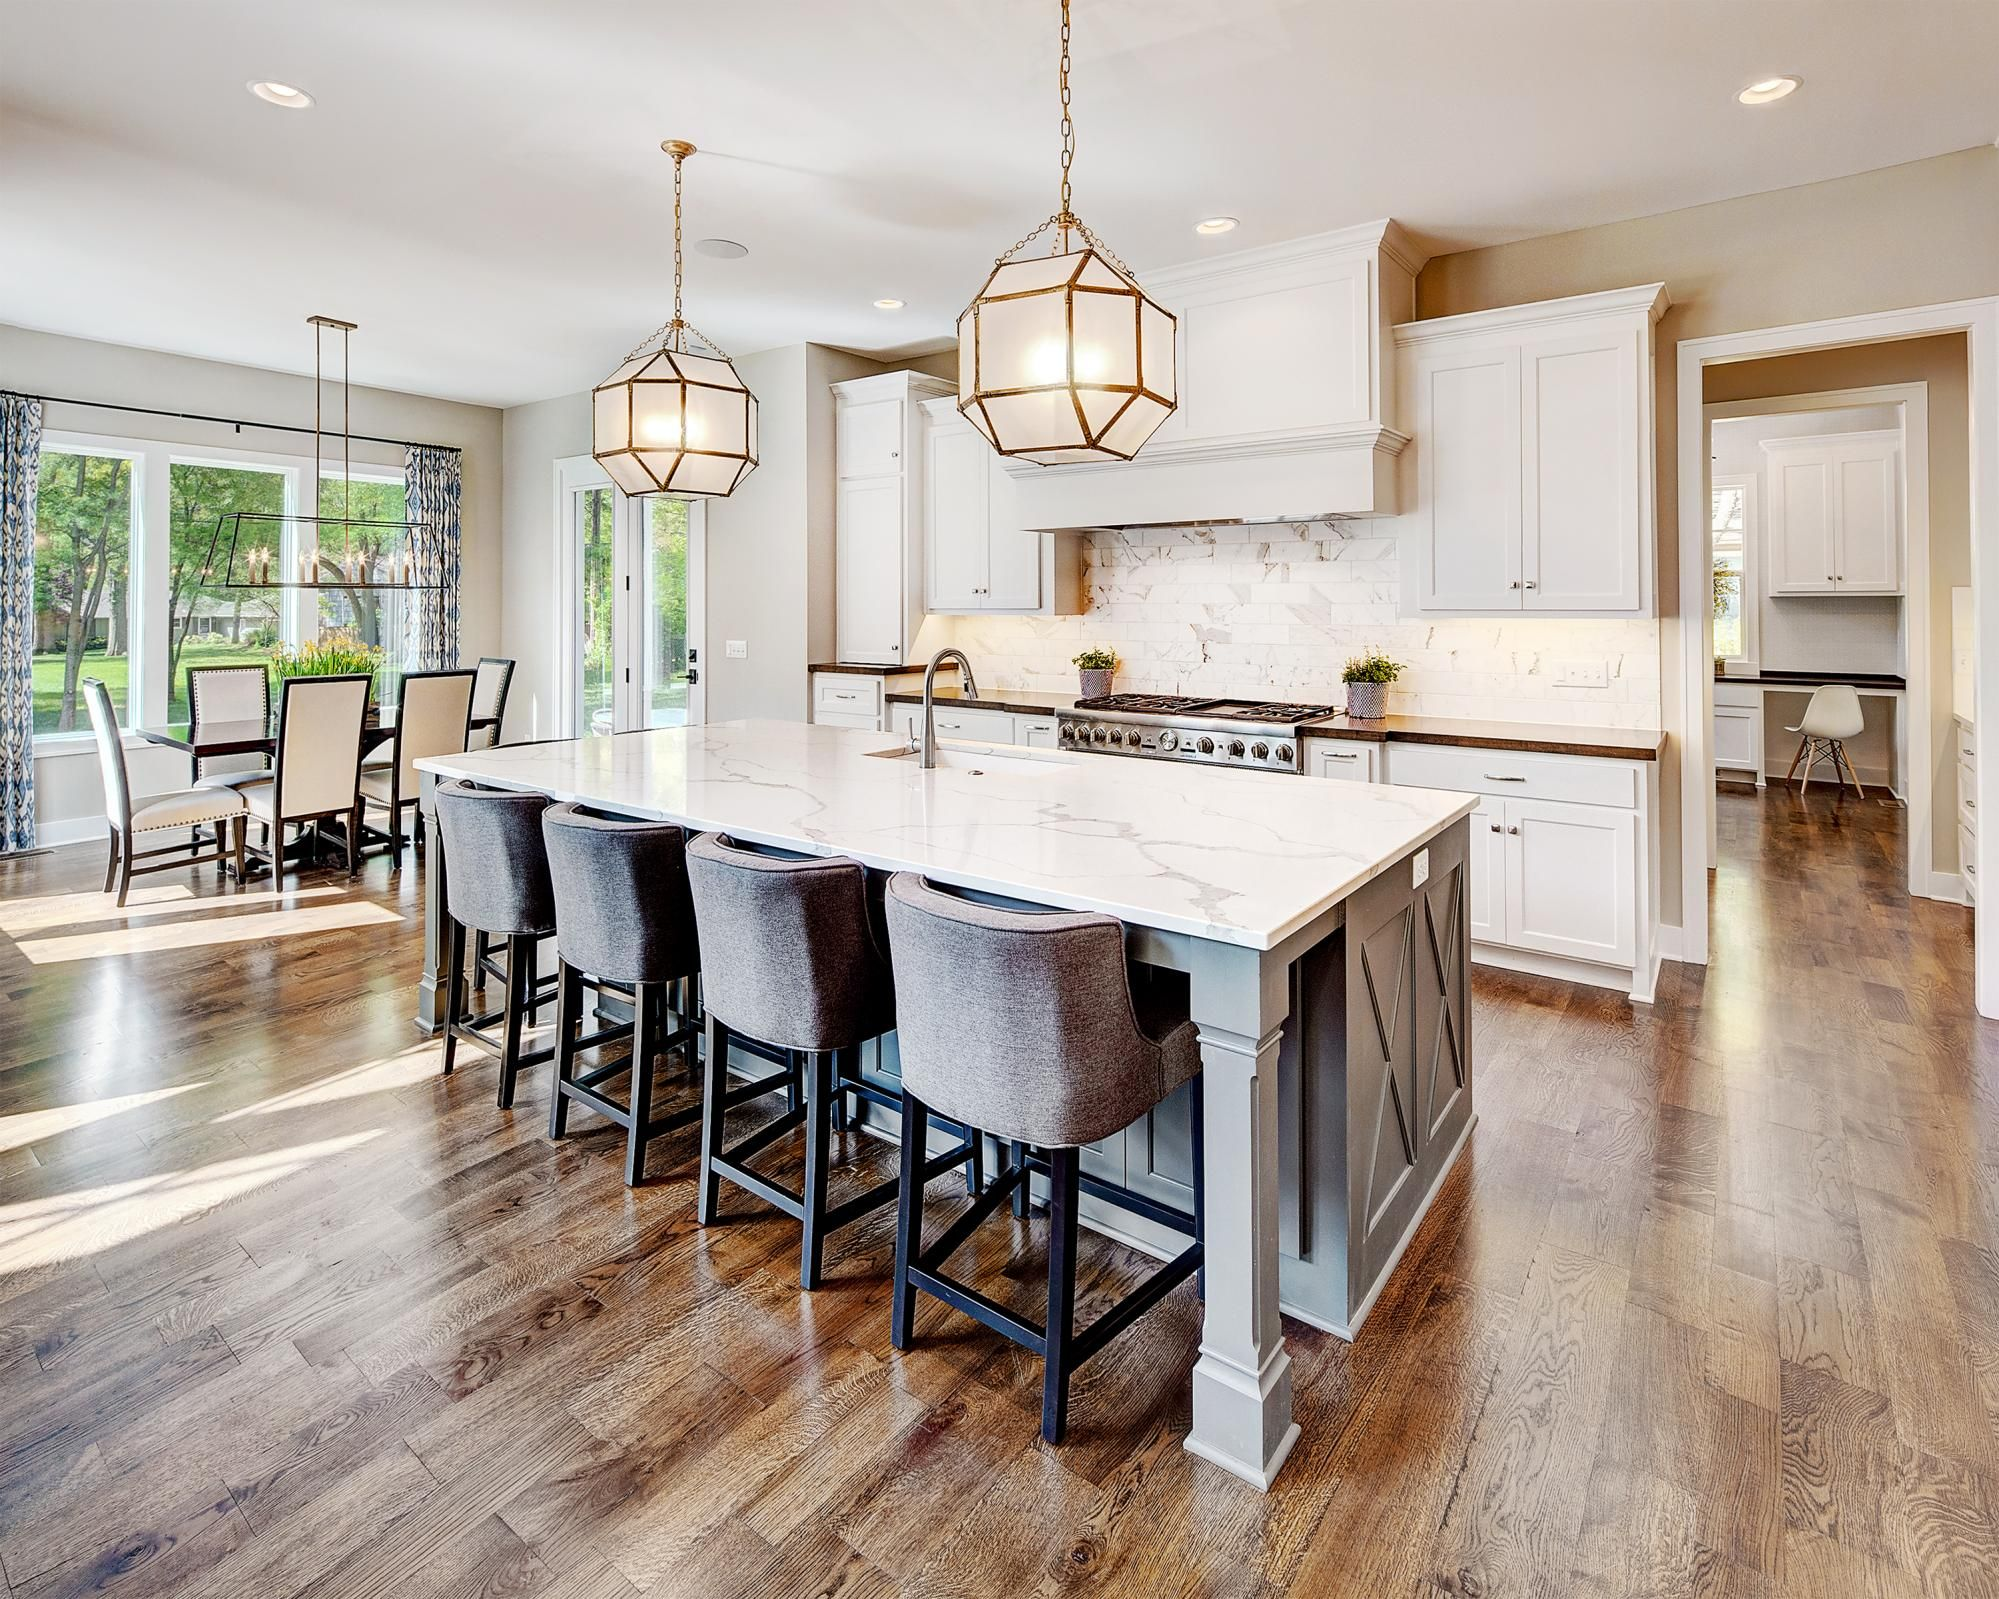 Kitchen Dining Photo Gallery Custom Homes In Kansas City Ks Starr Homes Home Home Bar Areas Beautiful Kitchens